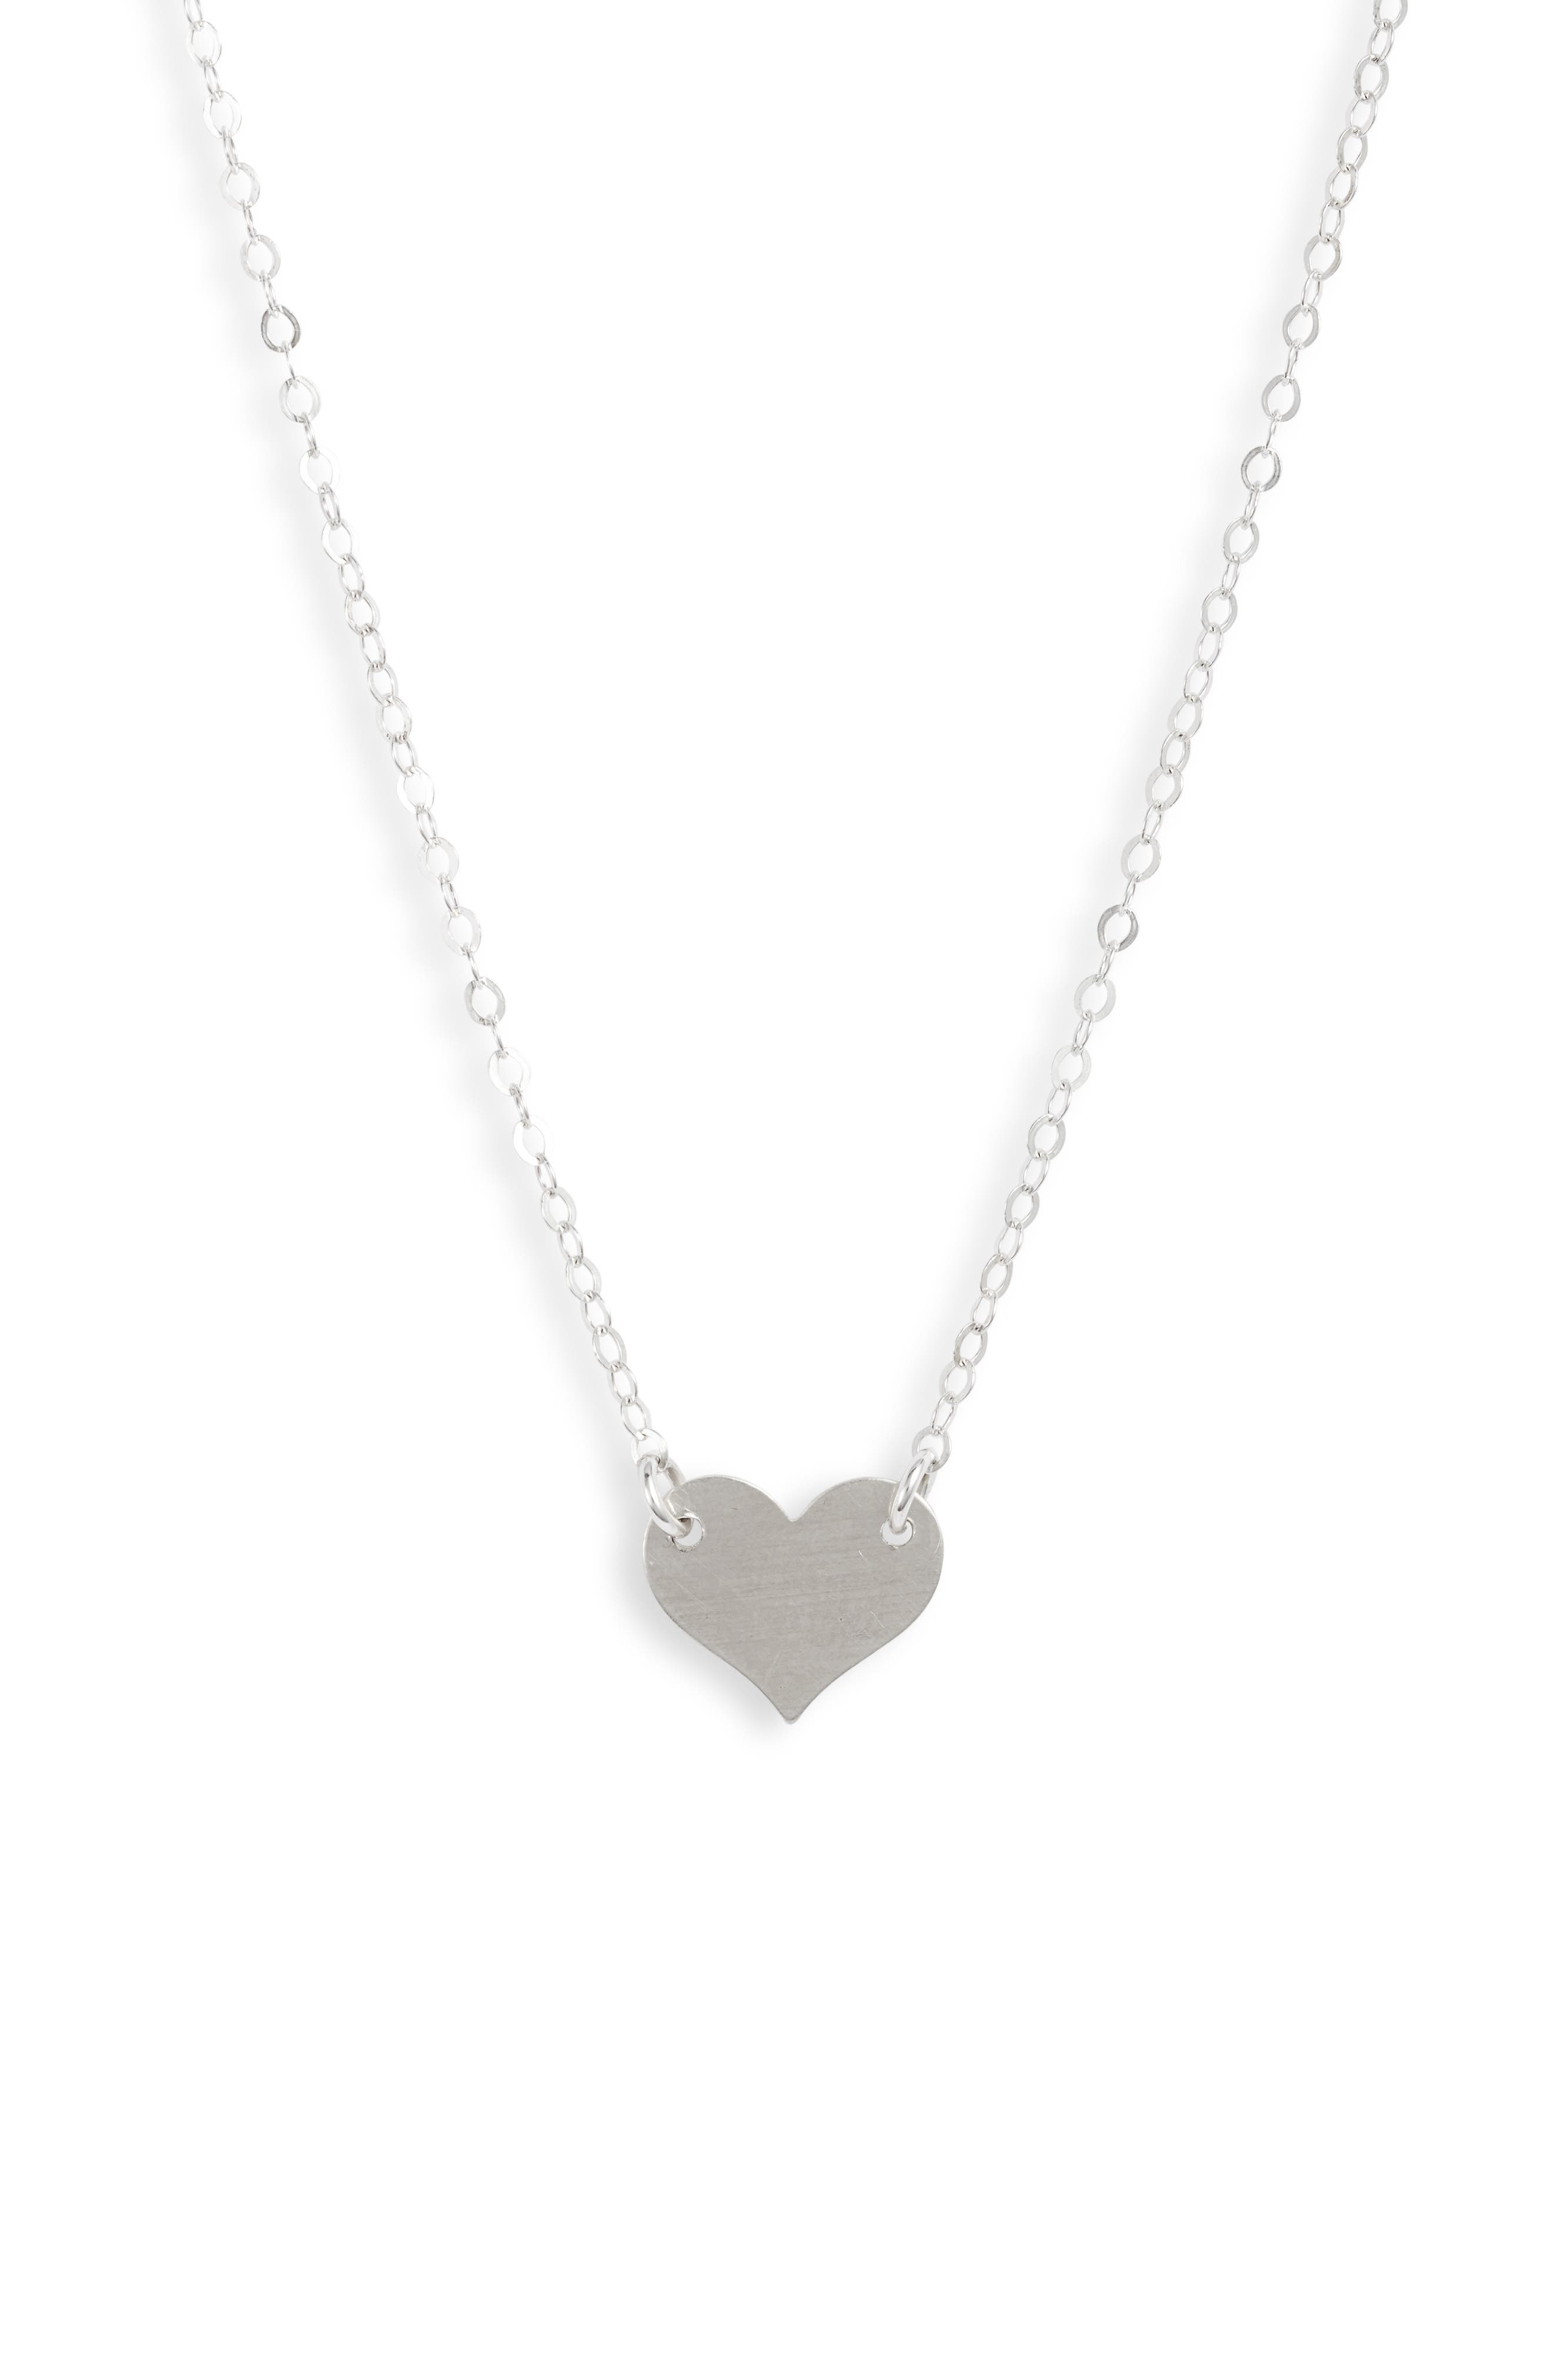 Sweet, simple and easy to layer, this dainty necklace showcases a heart charm that\\\'s both playful and romantic. Style Name: Set & Stones Jenny Heart Necklace. Style Number: 6057549. Available in stores.